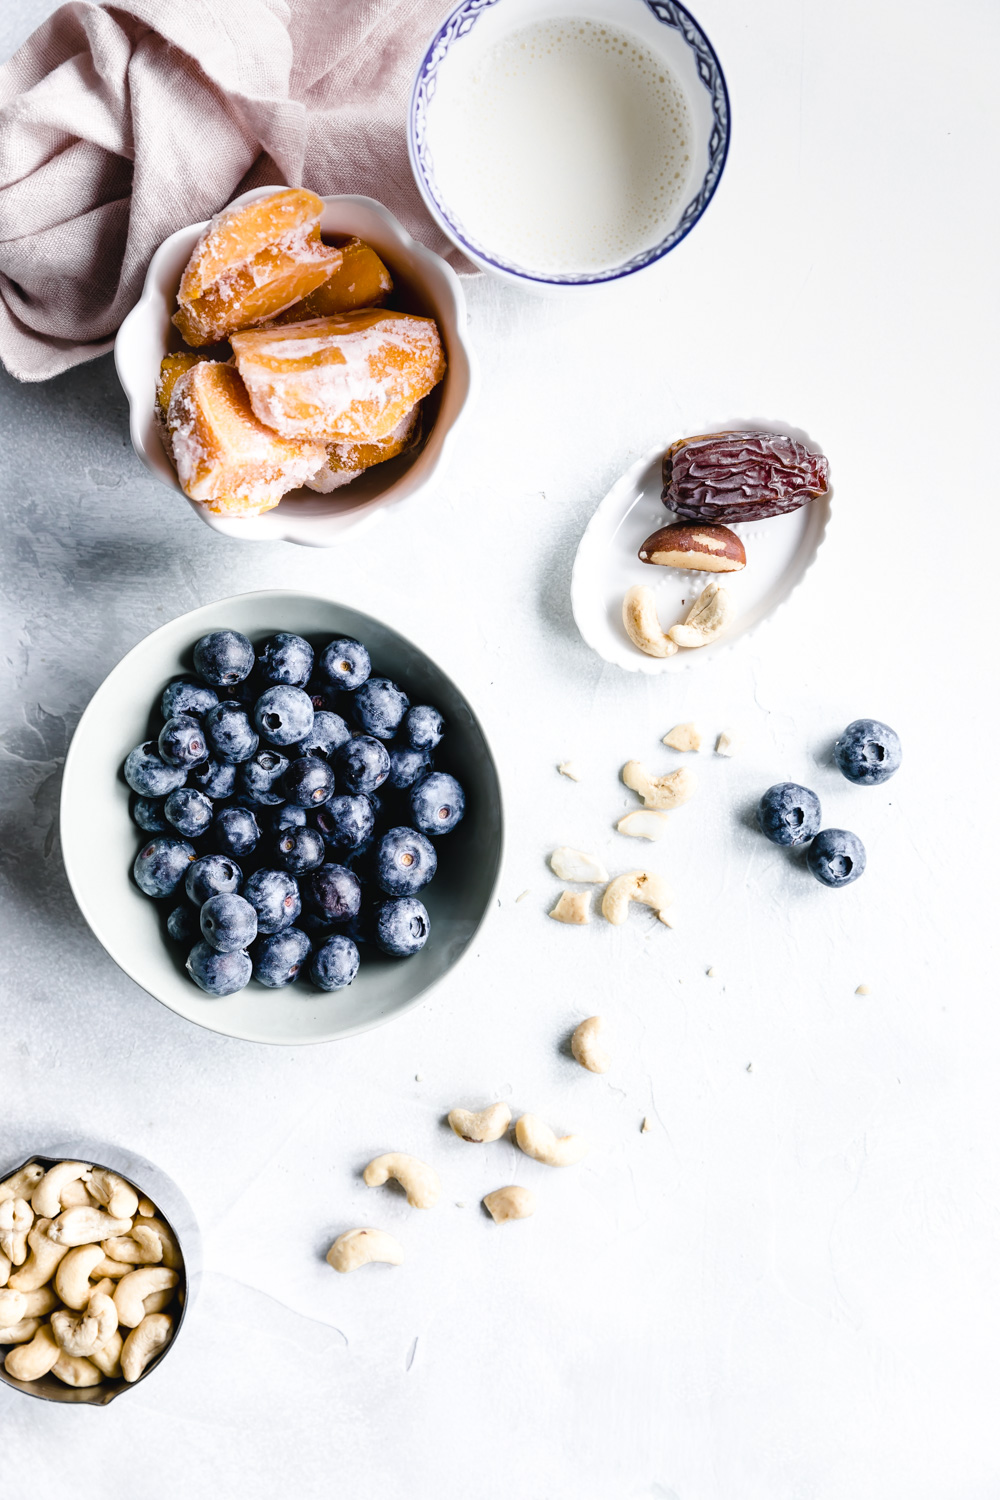 ingredients for blueberry smoothie in bowls and glasses on a white backdrop with a pink napkin